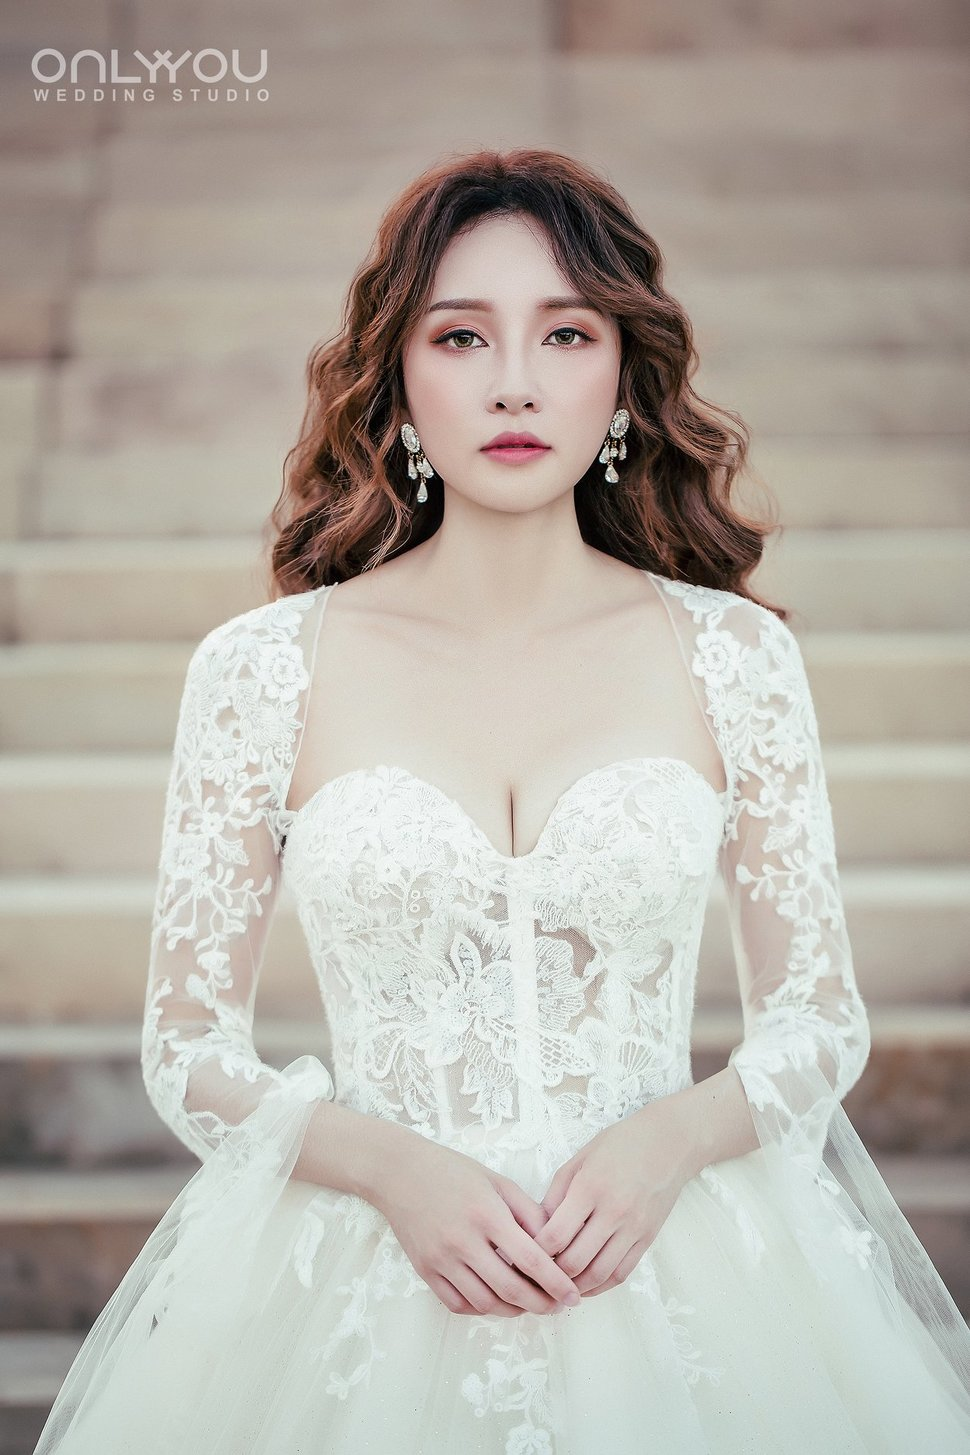 69308678_2340385599350406_6098938368744226816_o - ONLY YOU 唯你婚紗攝影《結婚吧》